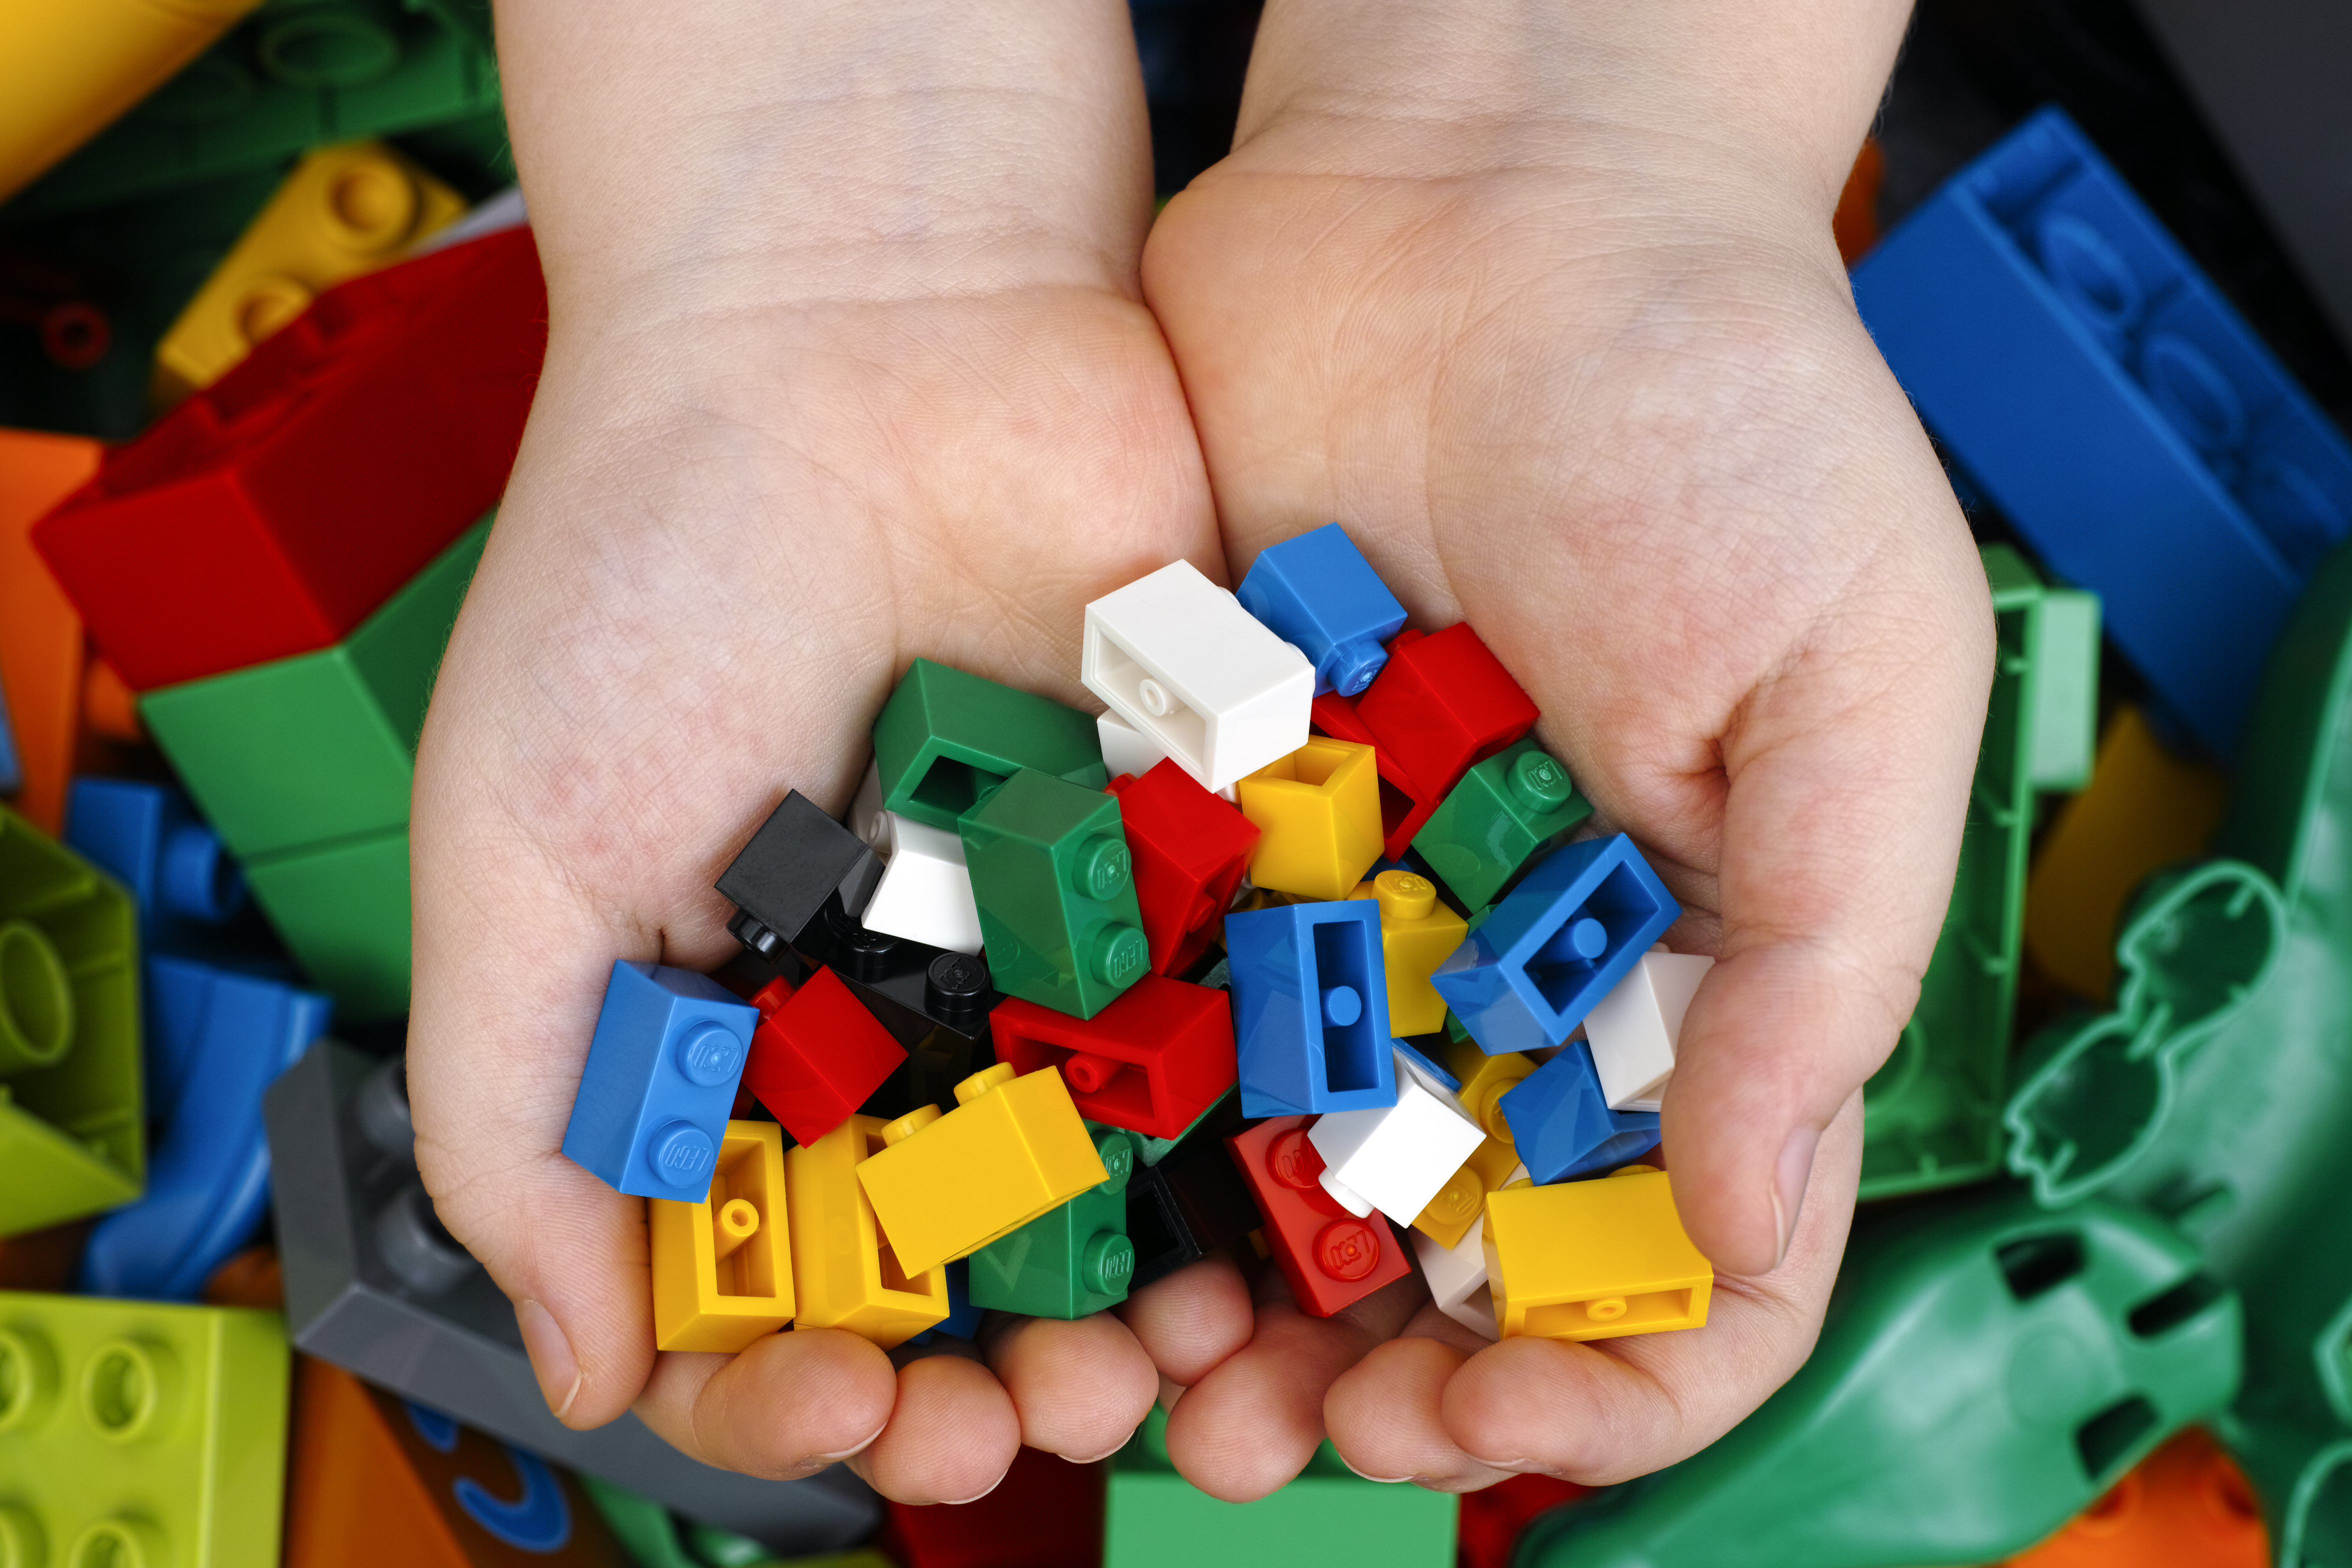 Lego in a child's hands.